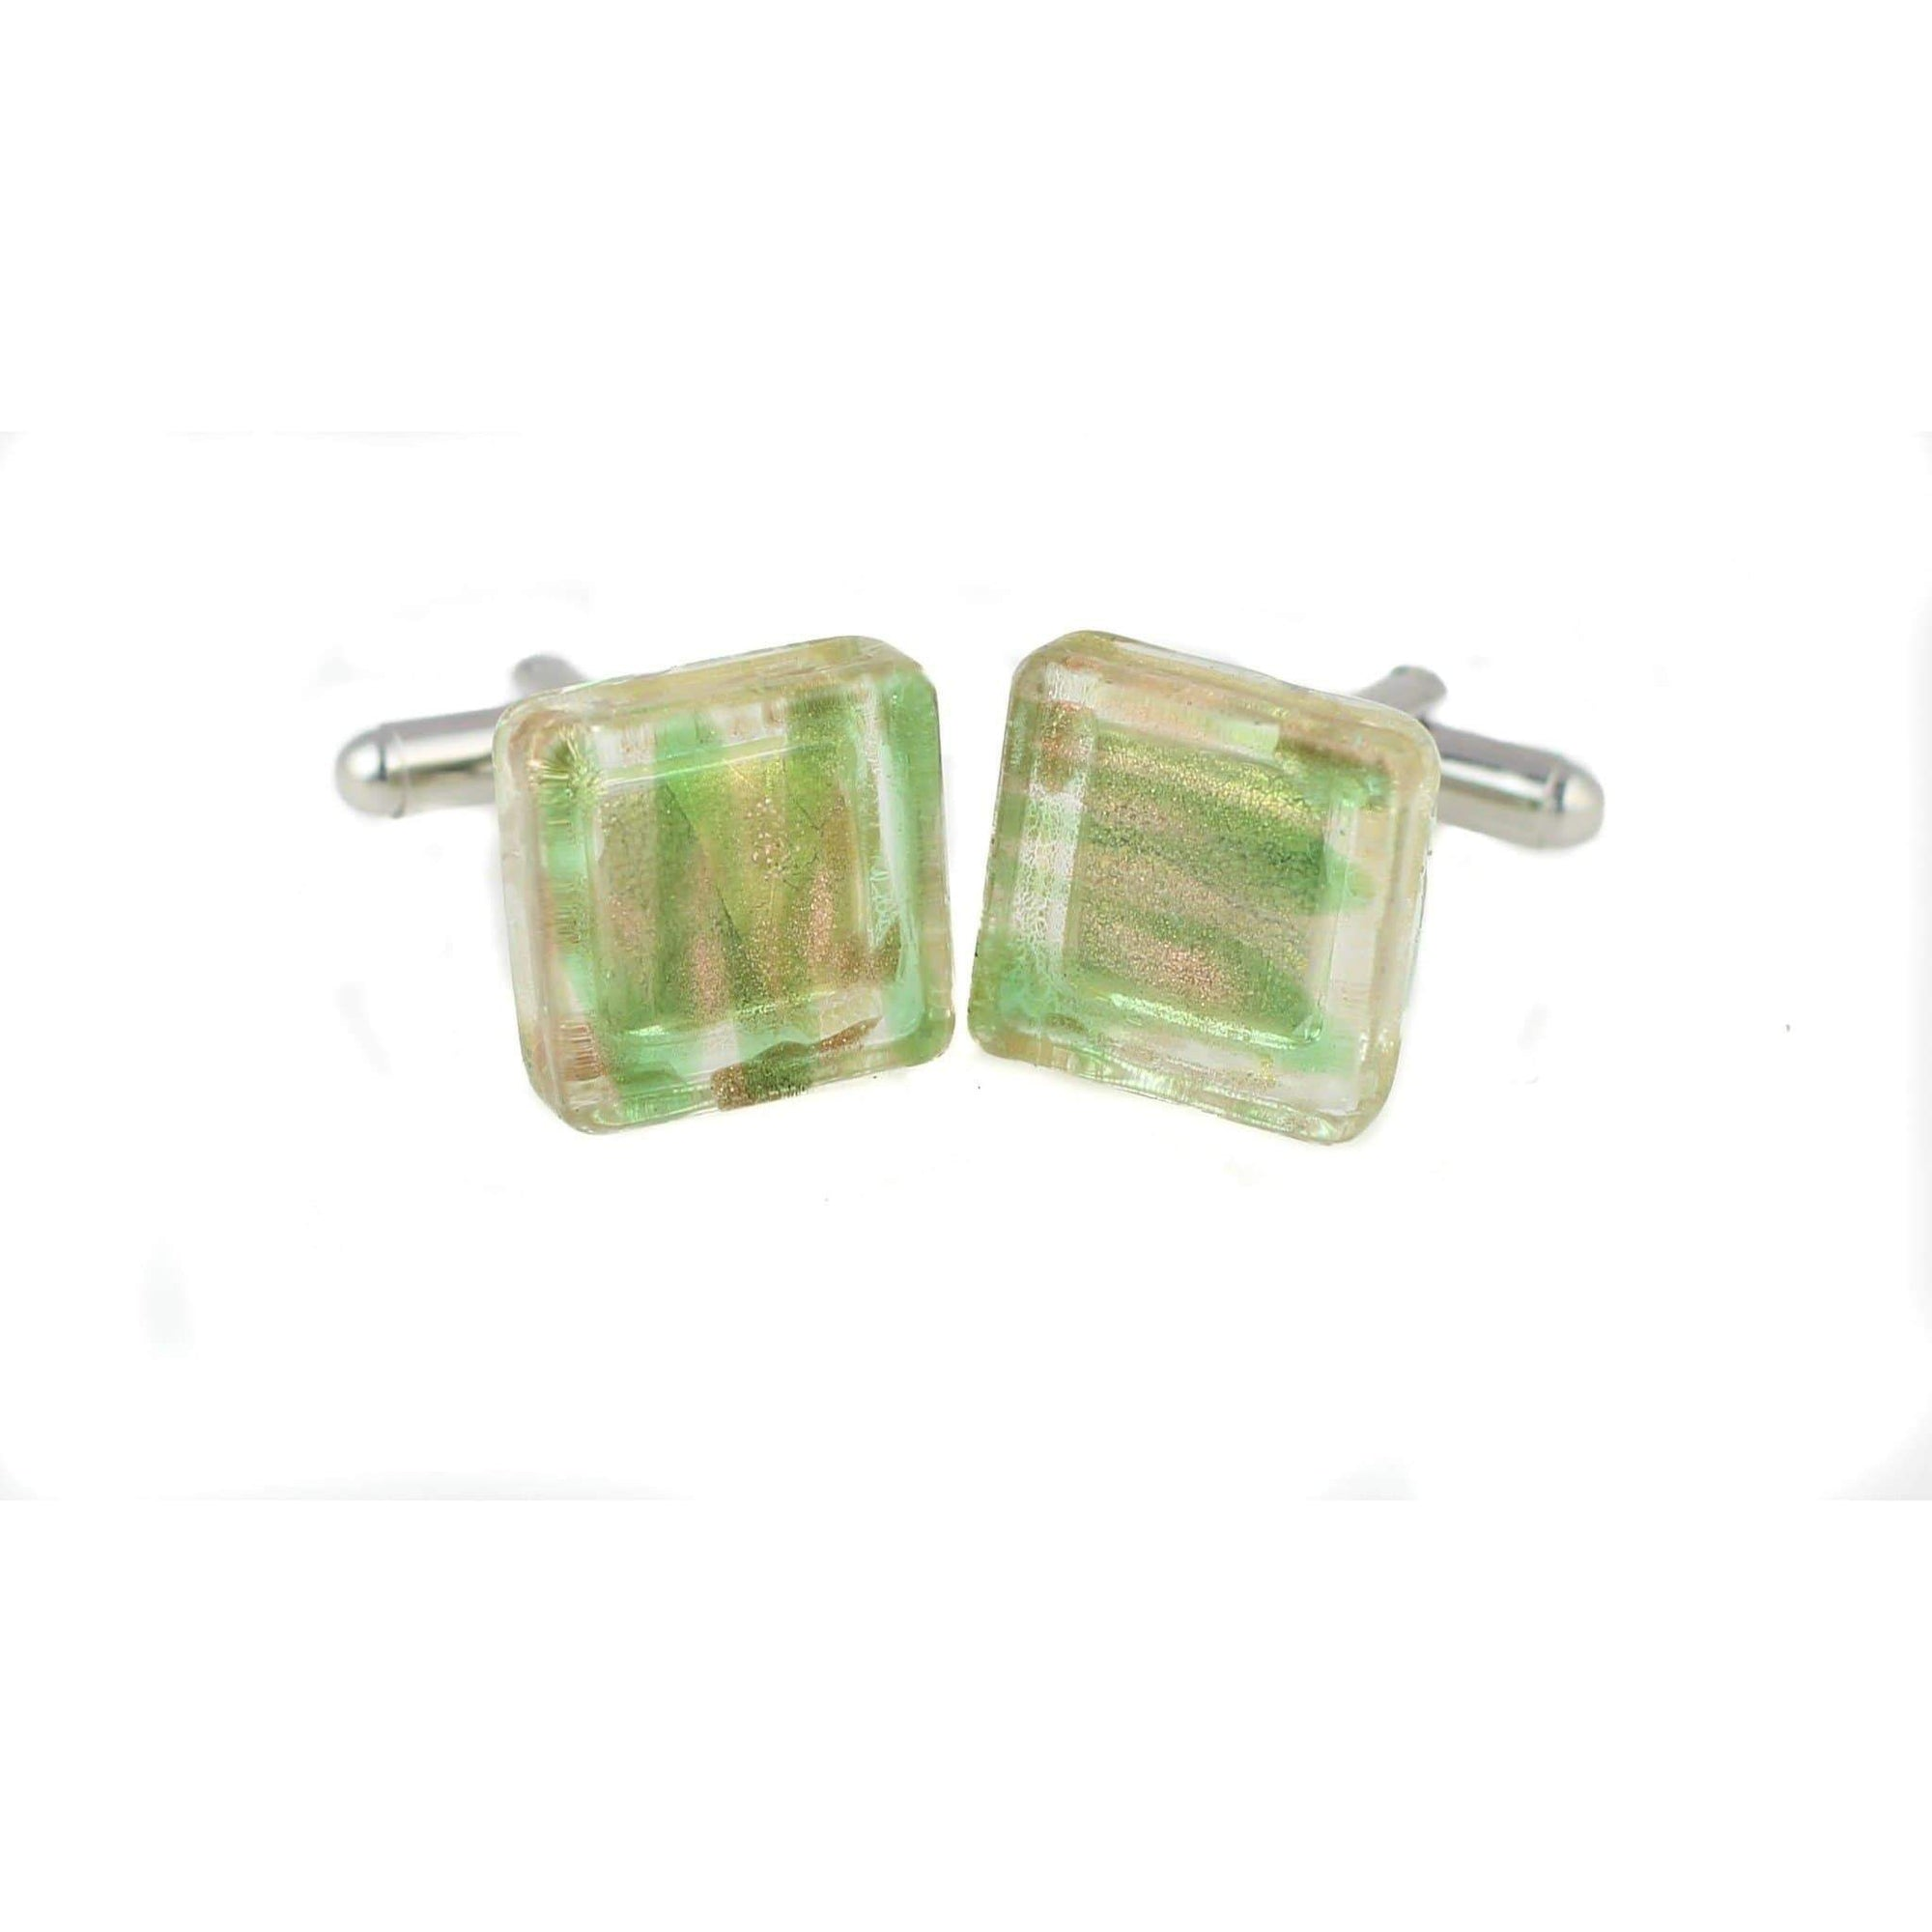 Yellow and Green Patterned Glass Cufflinks, Classic & Modern Cufflinks, Cuffed.com.au, ZBC3064, $36.30